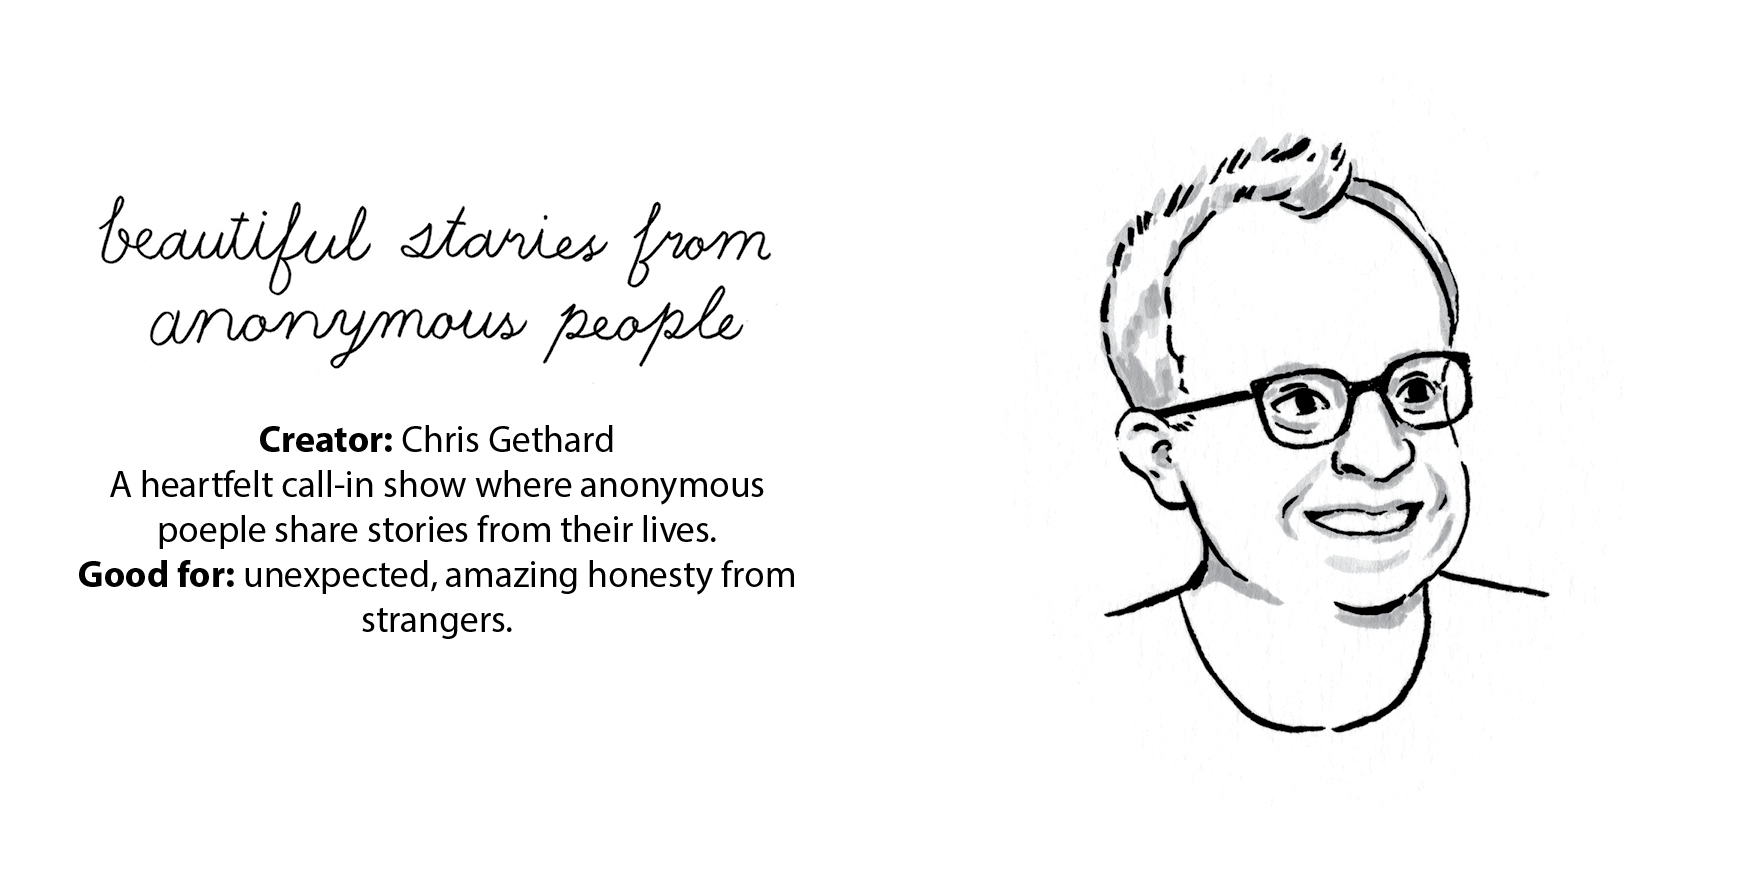 Podcaster Portraits Zine. Some of my favourite podcasts and portraits of the people who make them.